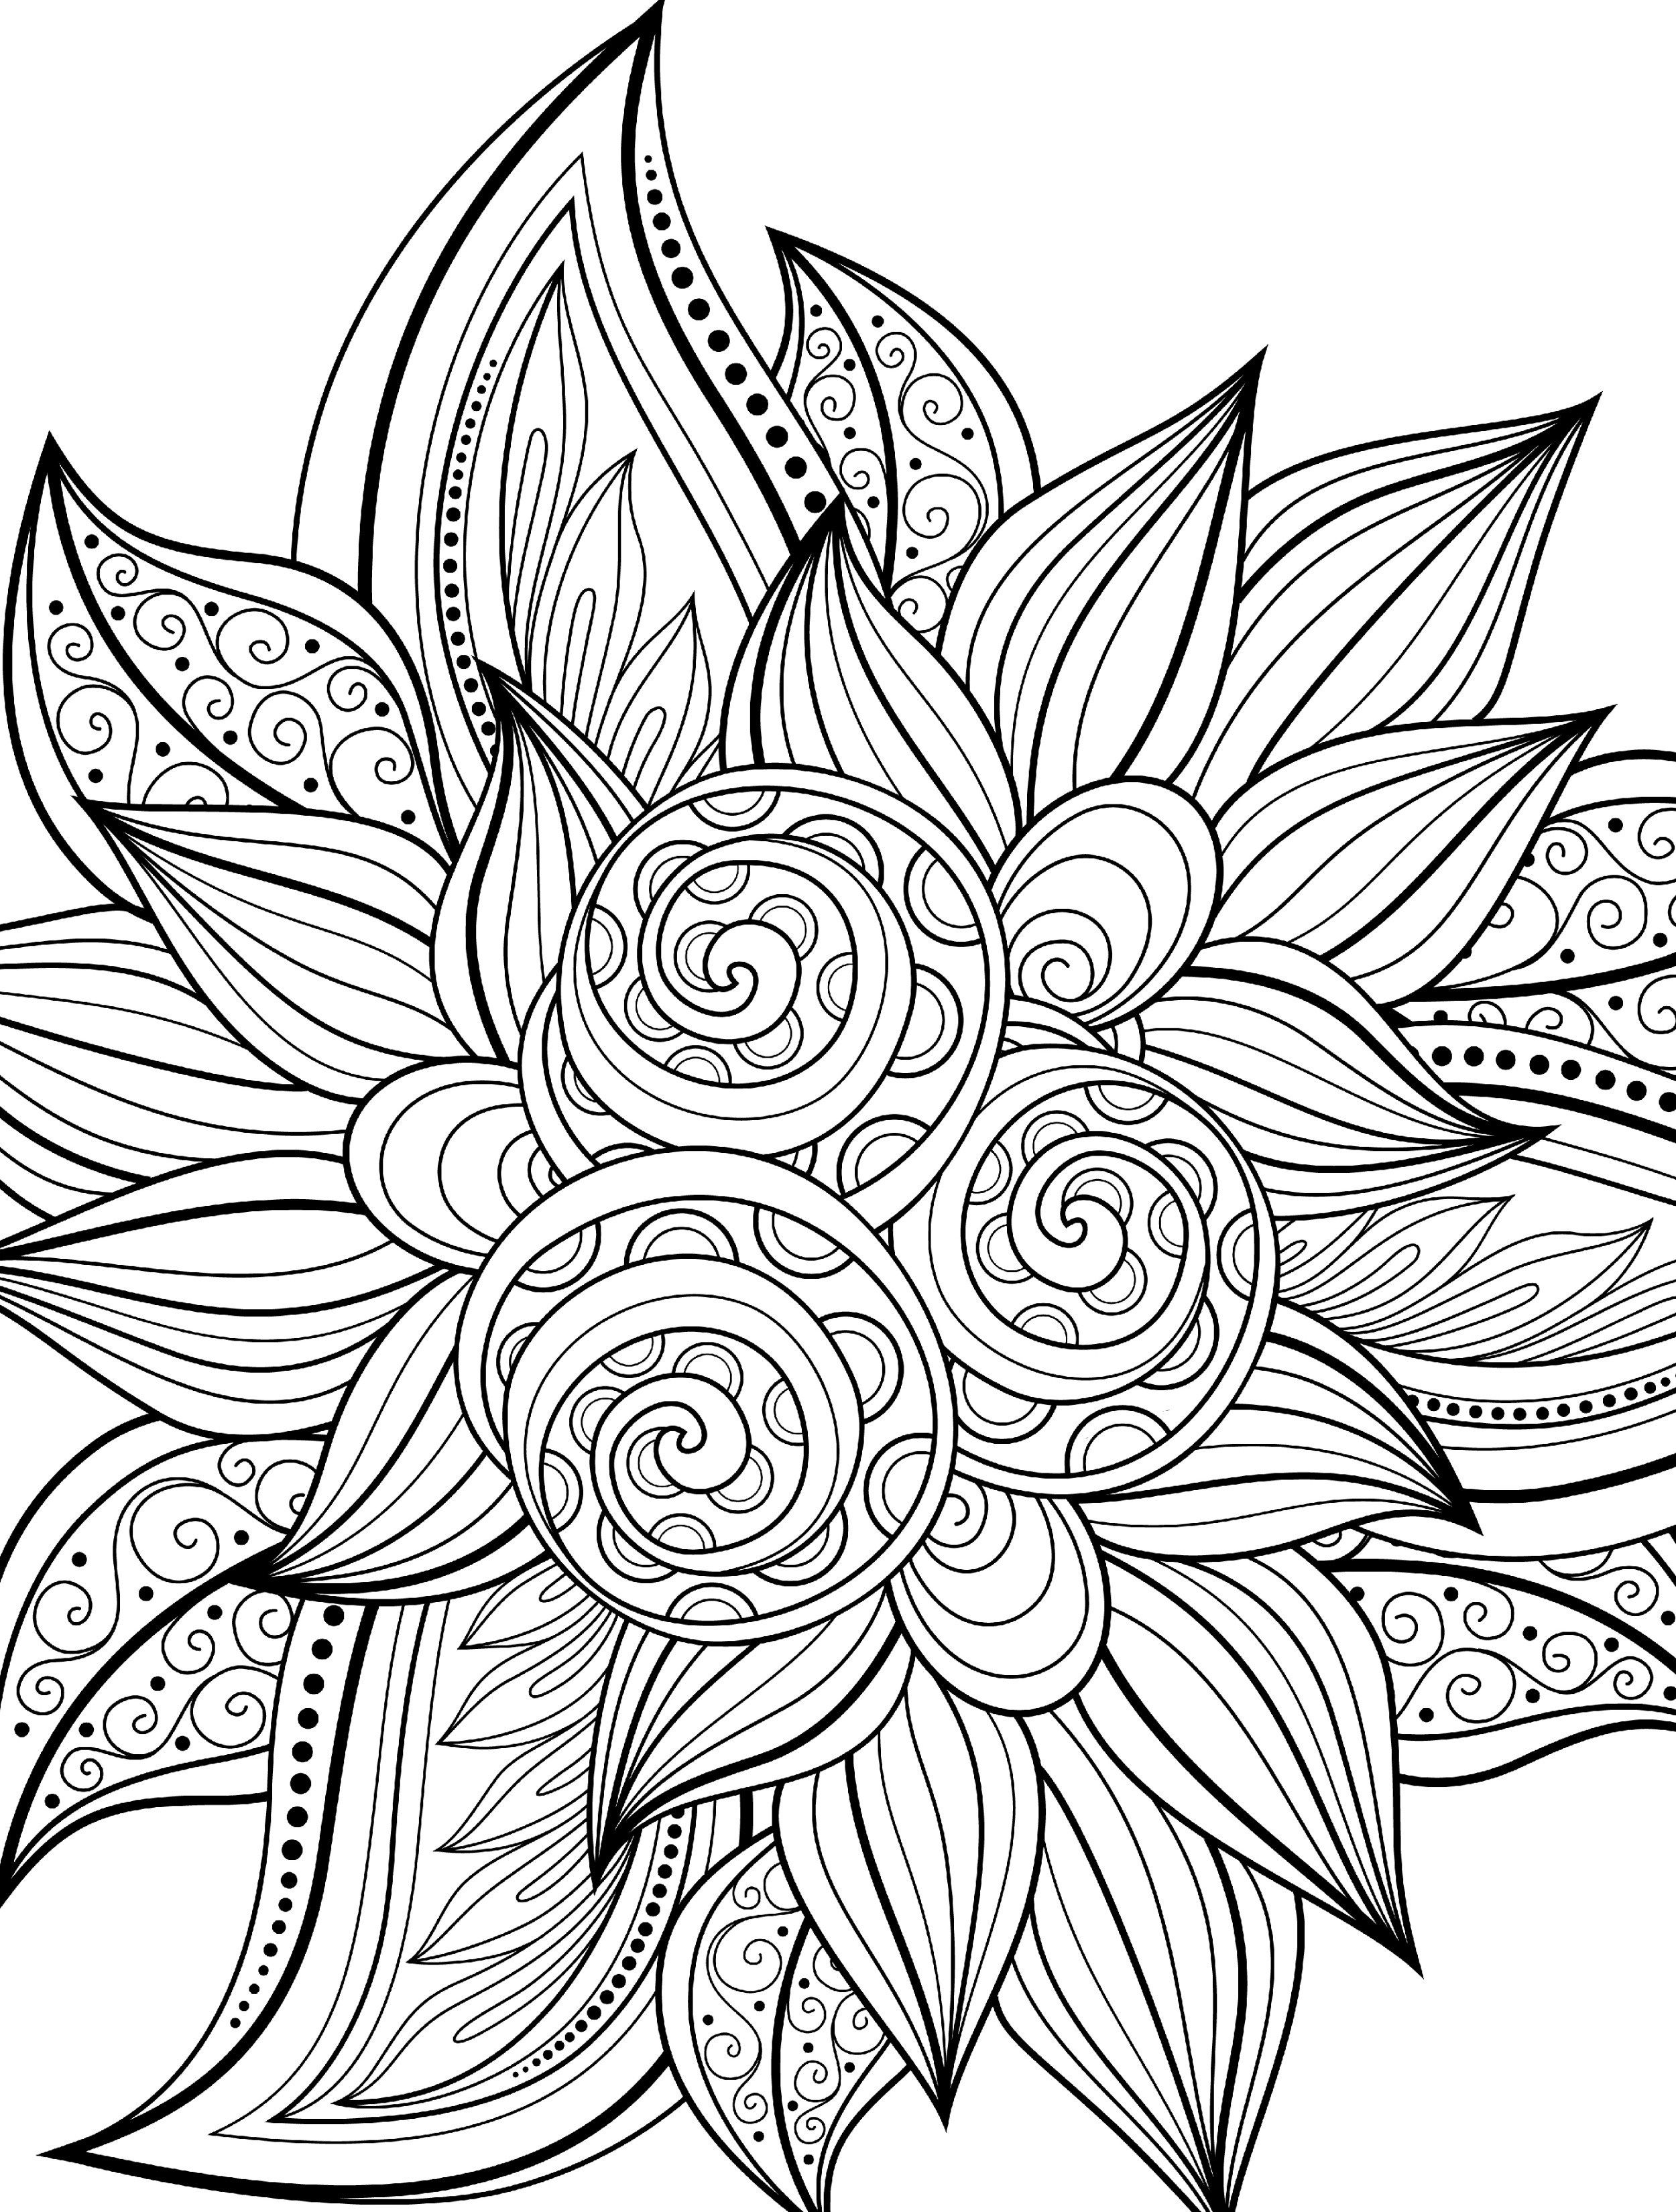 10 Free Printable Holiday Adult Coloring Pages ... | coloring pages for adults cool